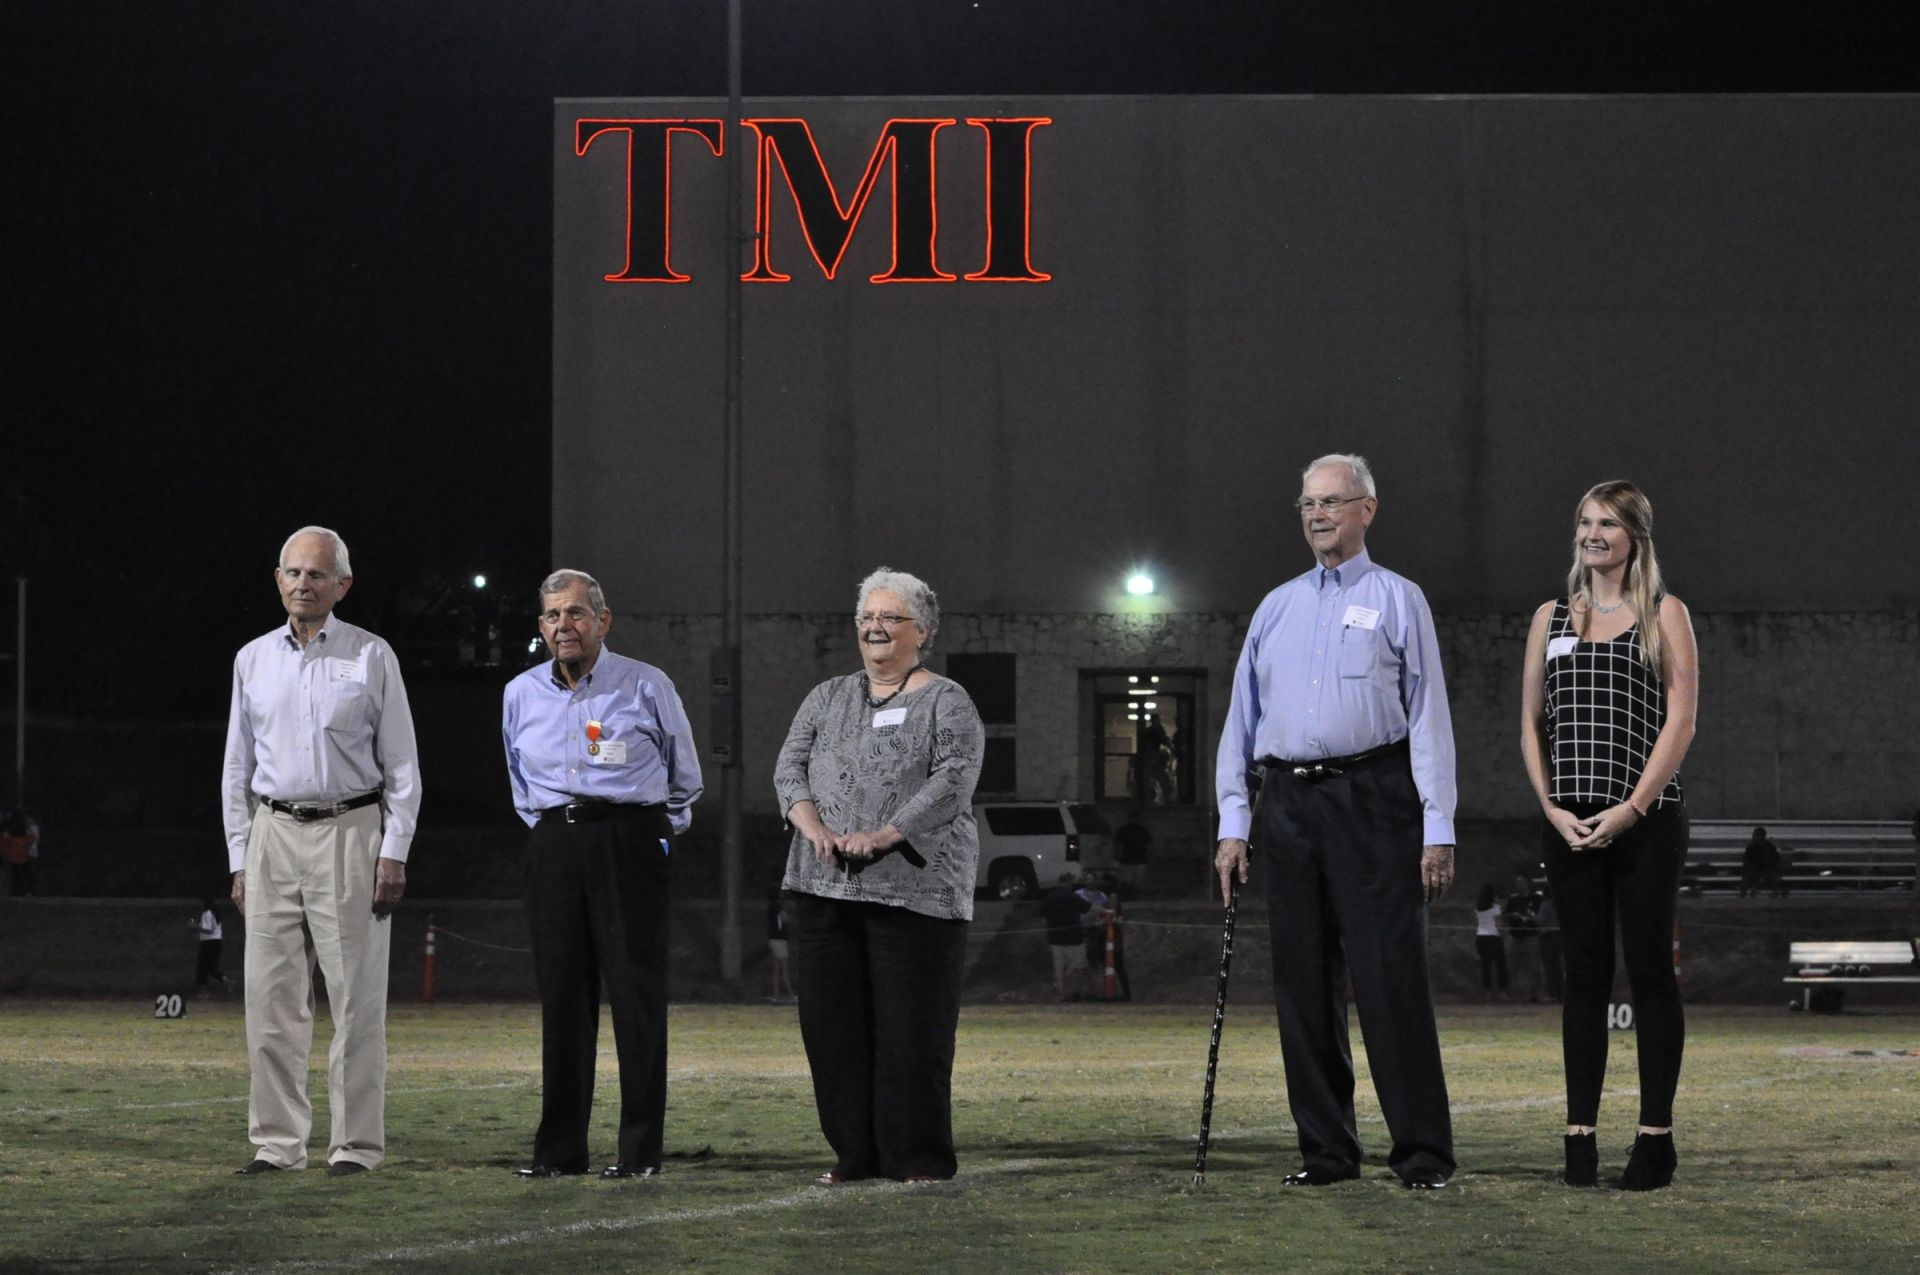 Hall of Fame honorees on Homecoming game field